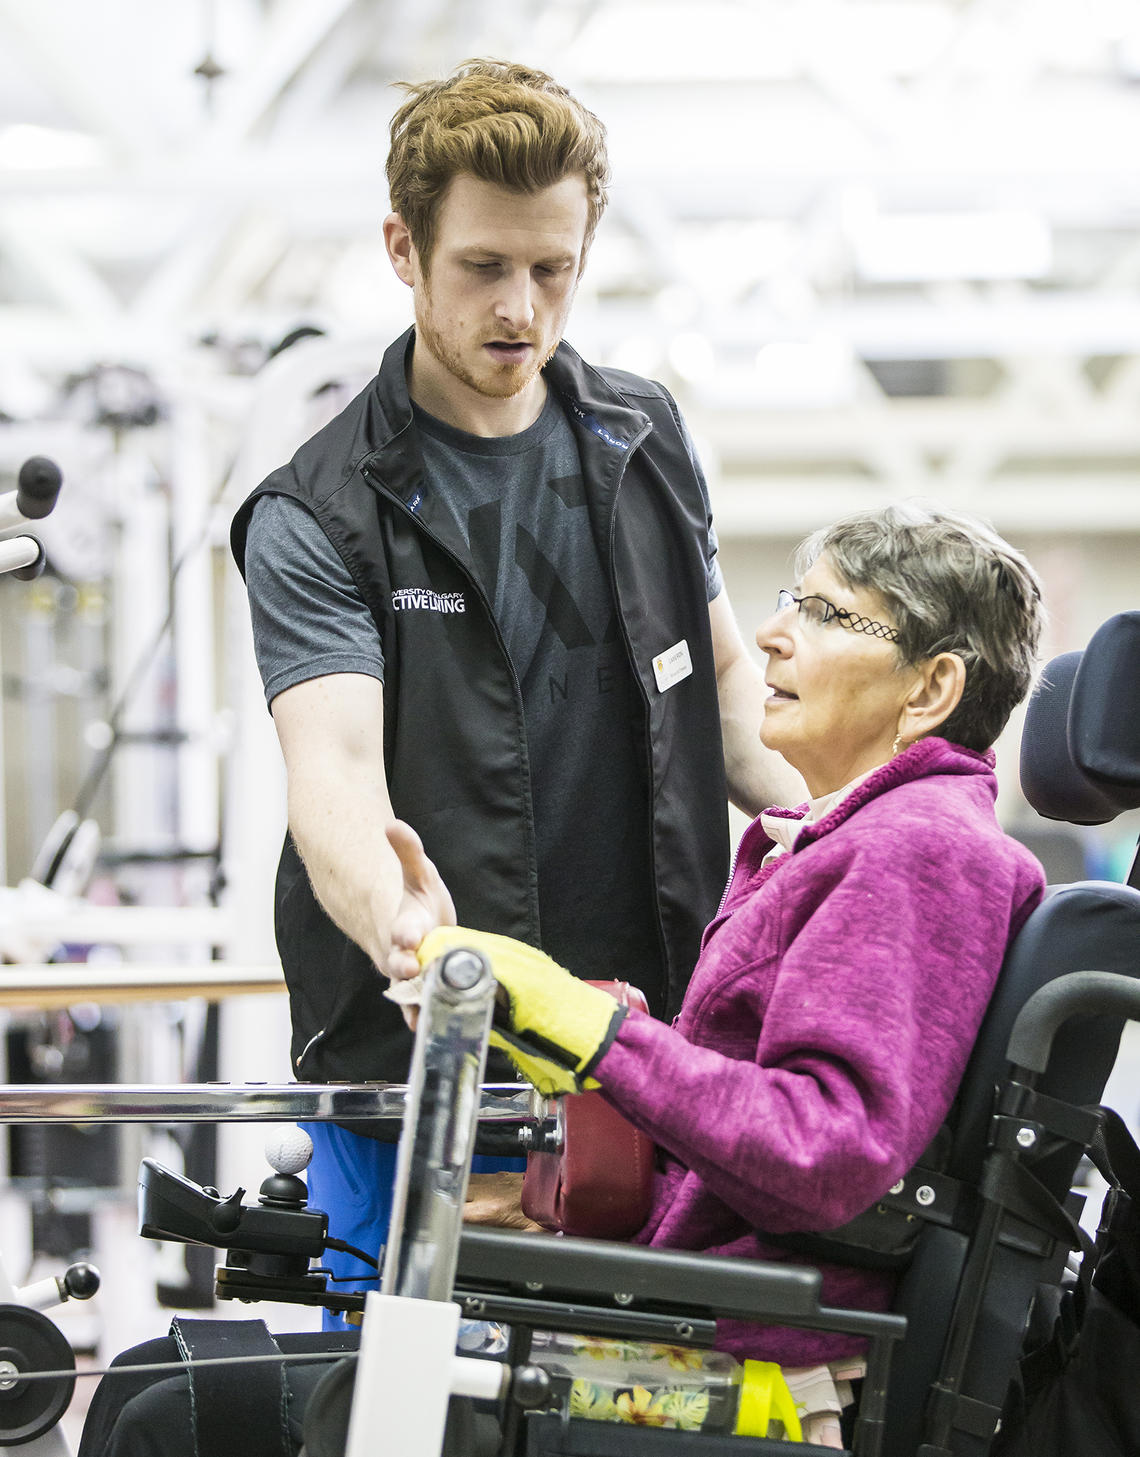 UCalgary Rehab fitness member works on her strength training